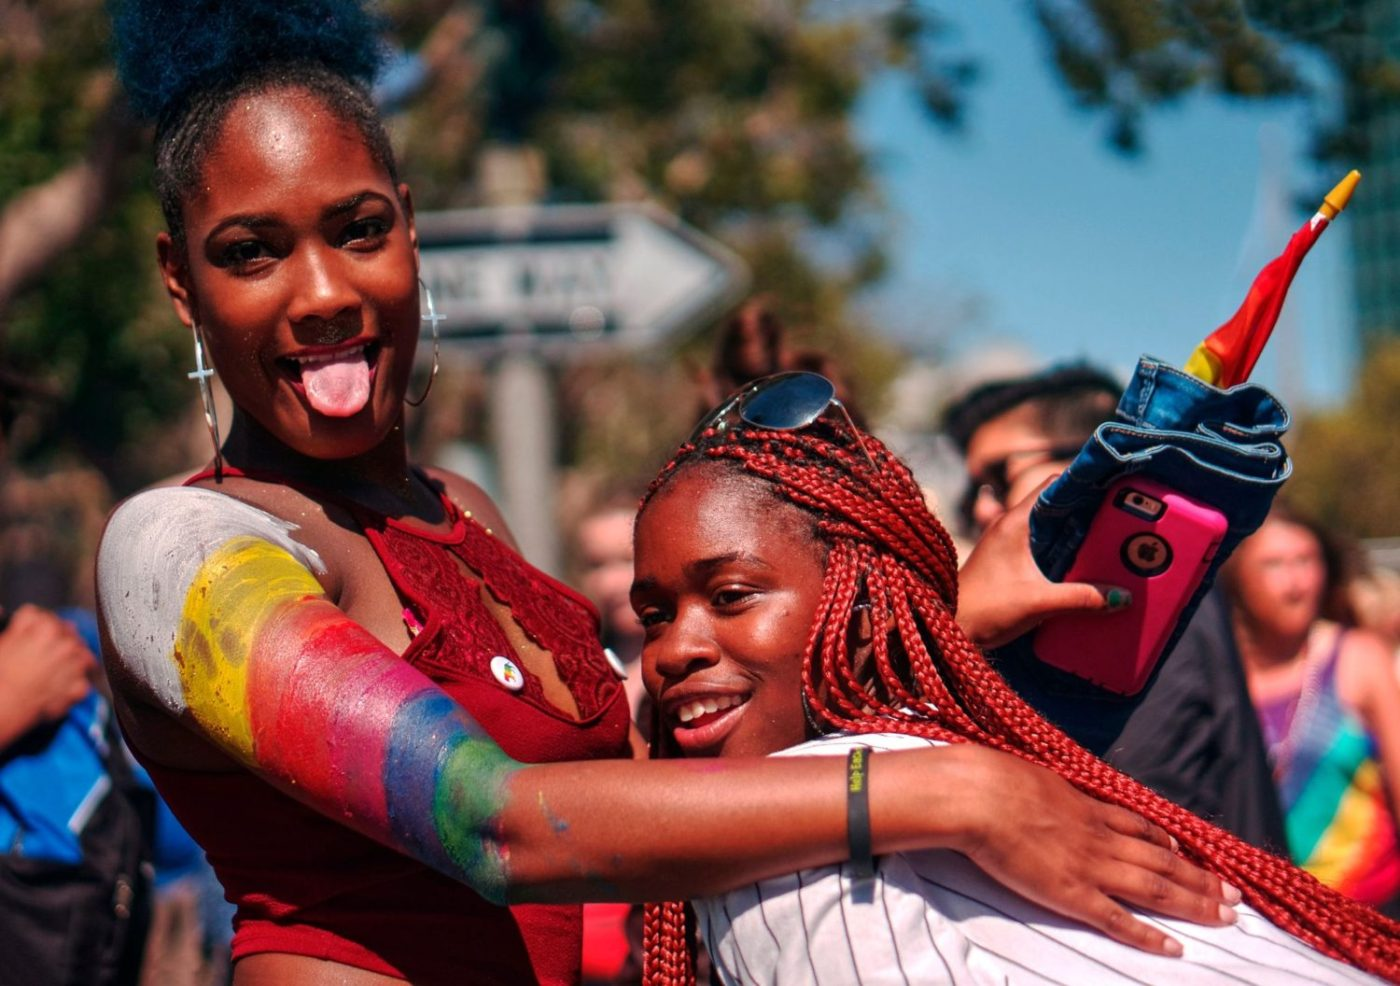 San-Francisco-Pride-2016-by-Peter-Thoeny-1400x986, Oakland Pride is back in person, Folsom Street Fair presents Megahood and more, Culture Currents